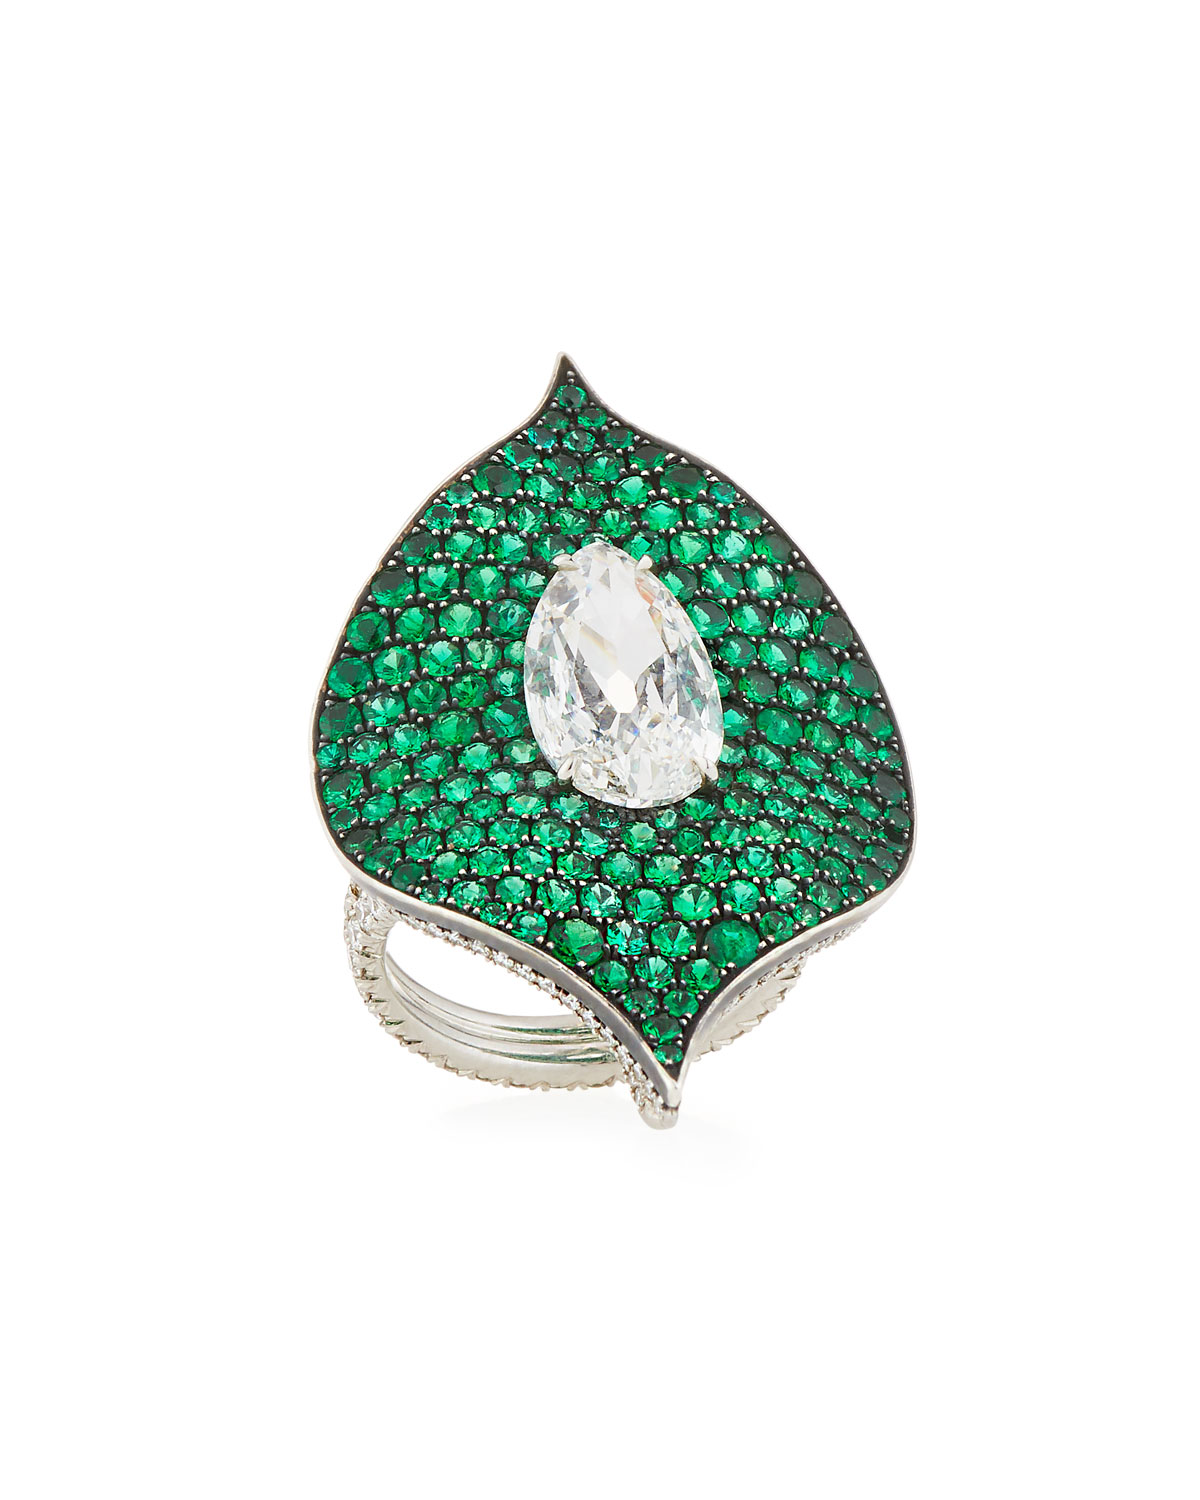 BAYCO Platinum, Emerald & Diamond Ring